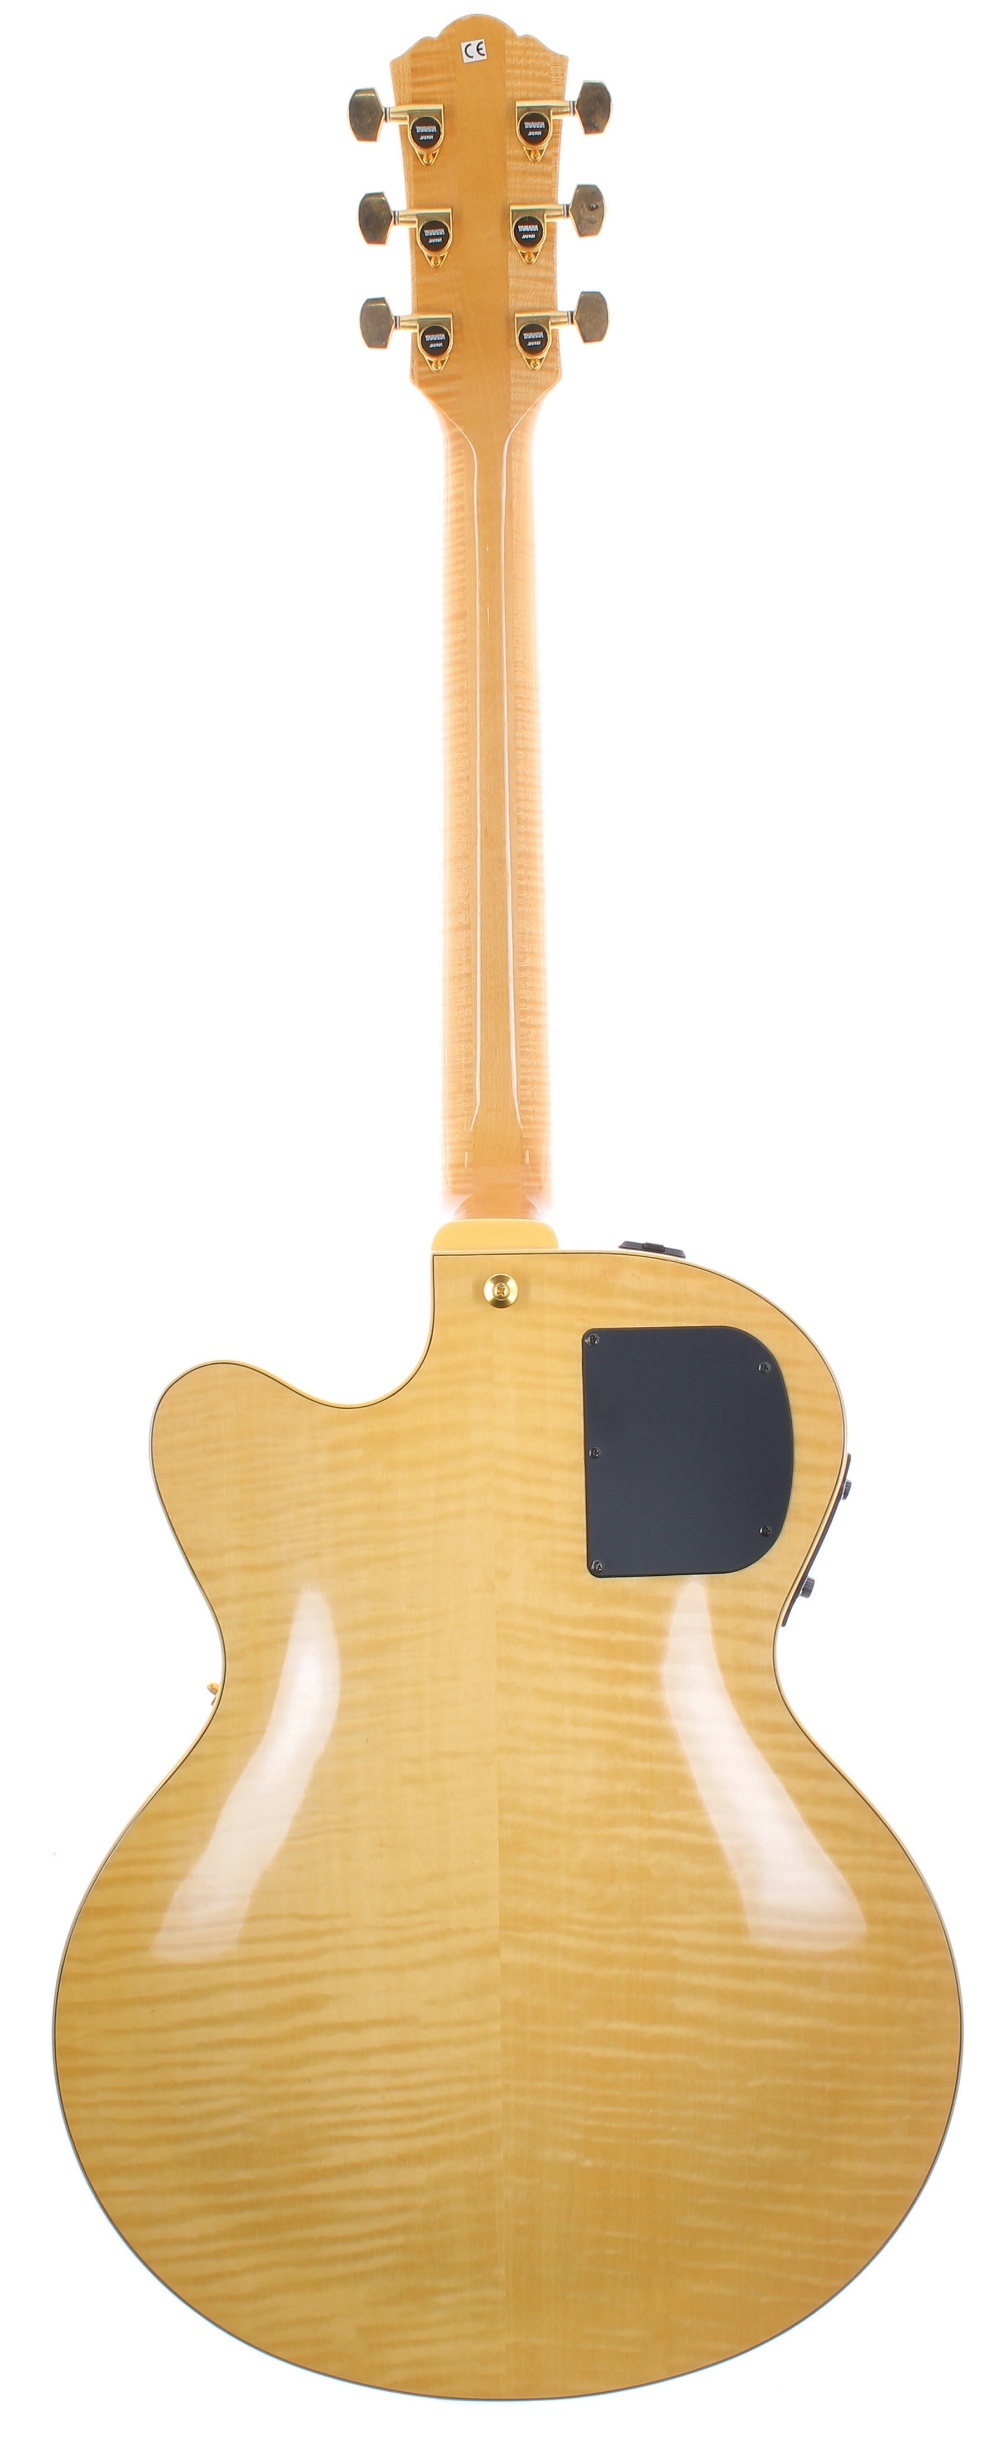 1999 Yamaha AEX1500 hollow body electric guitar, made in Japan, ser. no. 9xxxxx8; Finish: natural; - Image 2 of 2